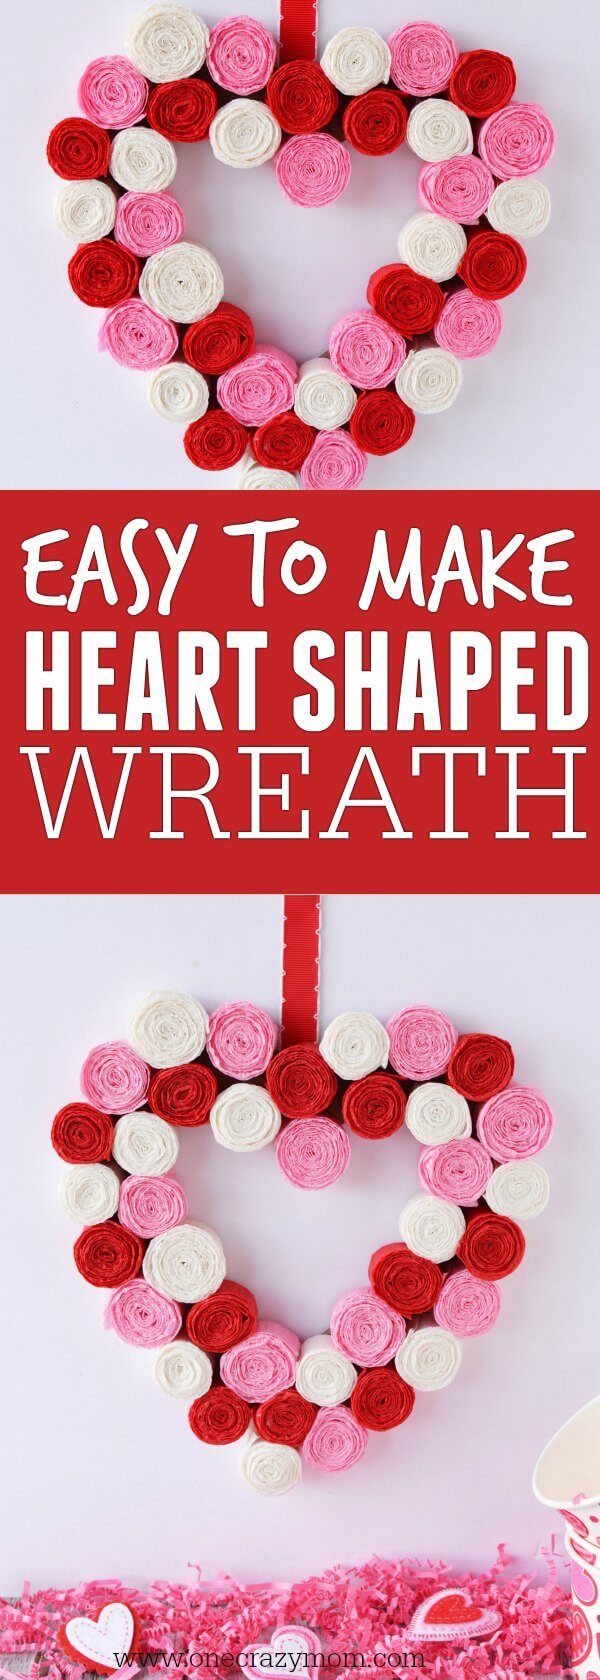 Make this festive heart shaped wreath for Valentine's Day. Learn how to make a heart wreath. This Valentine wreath is so simple and easy to make.